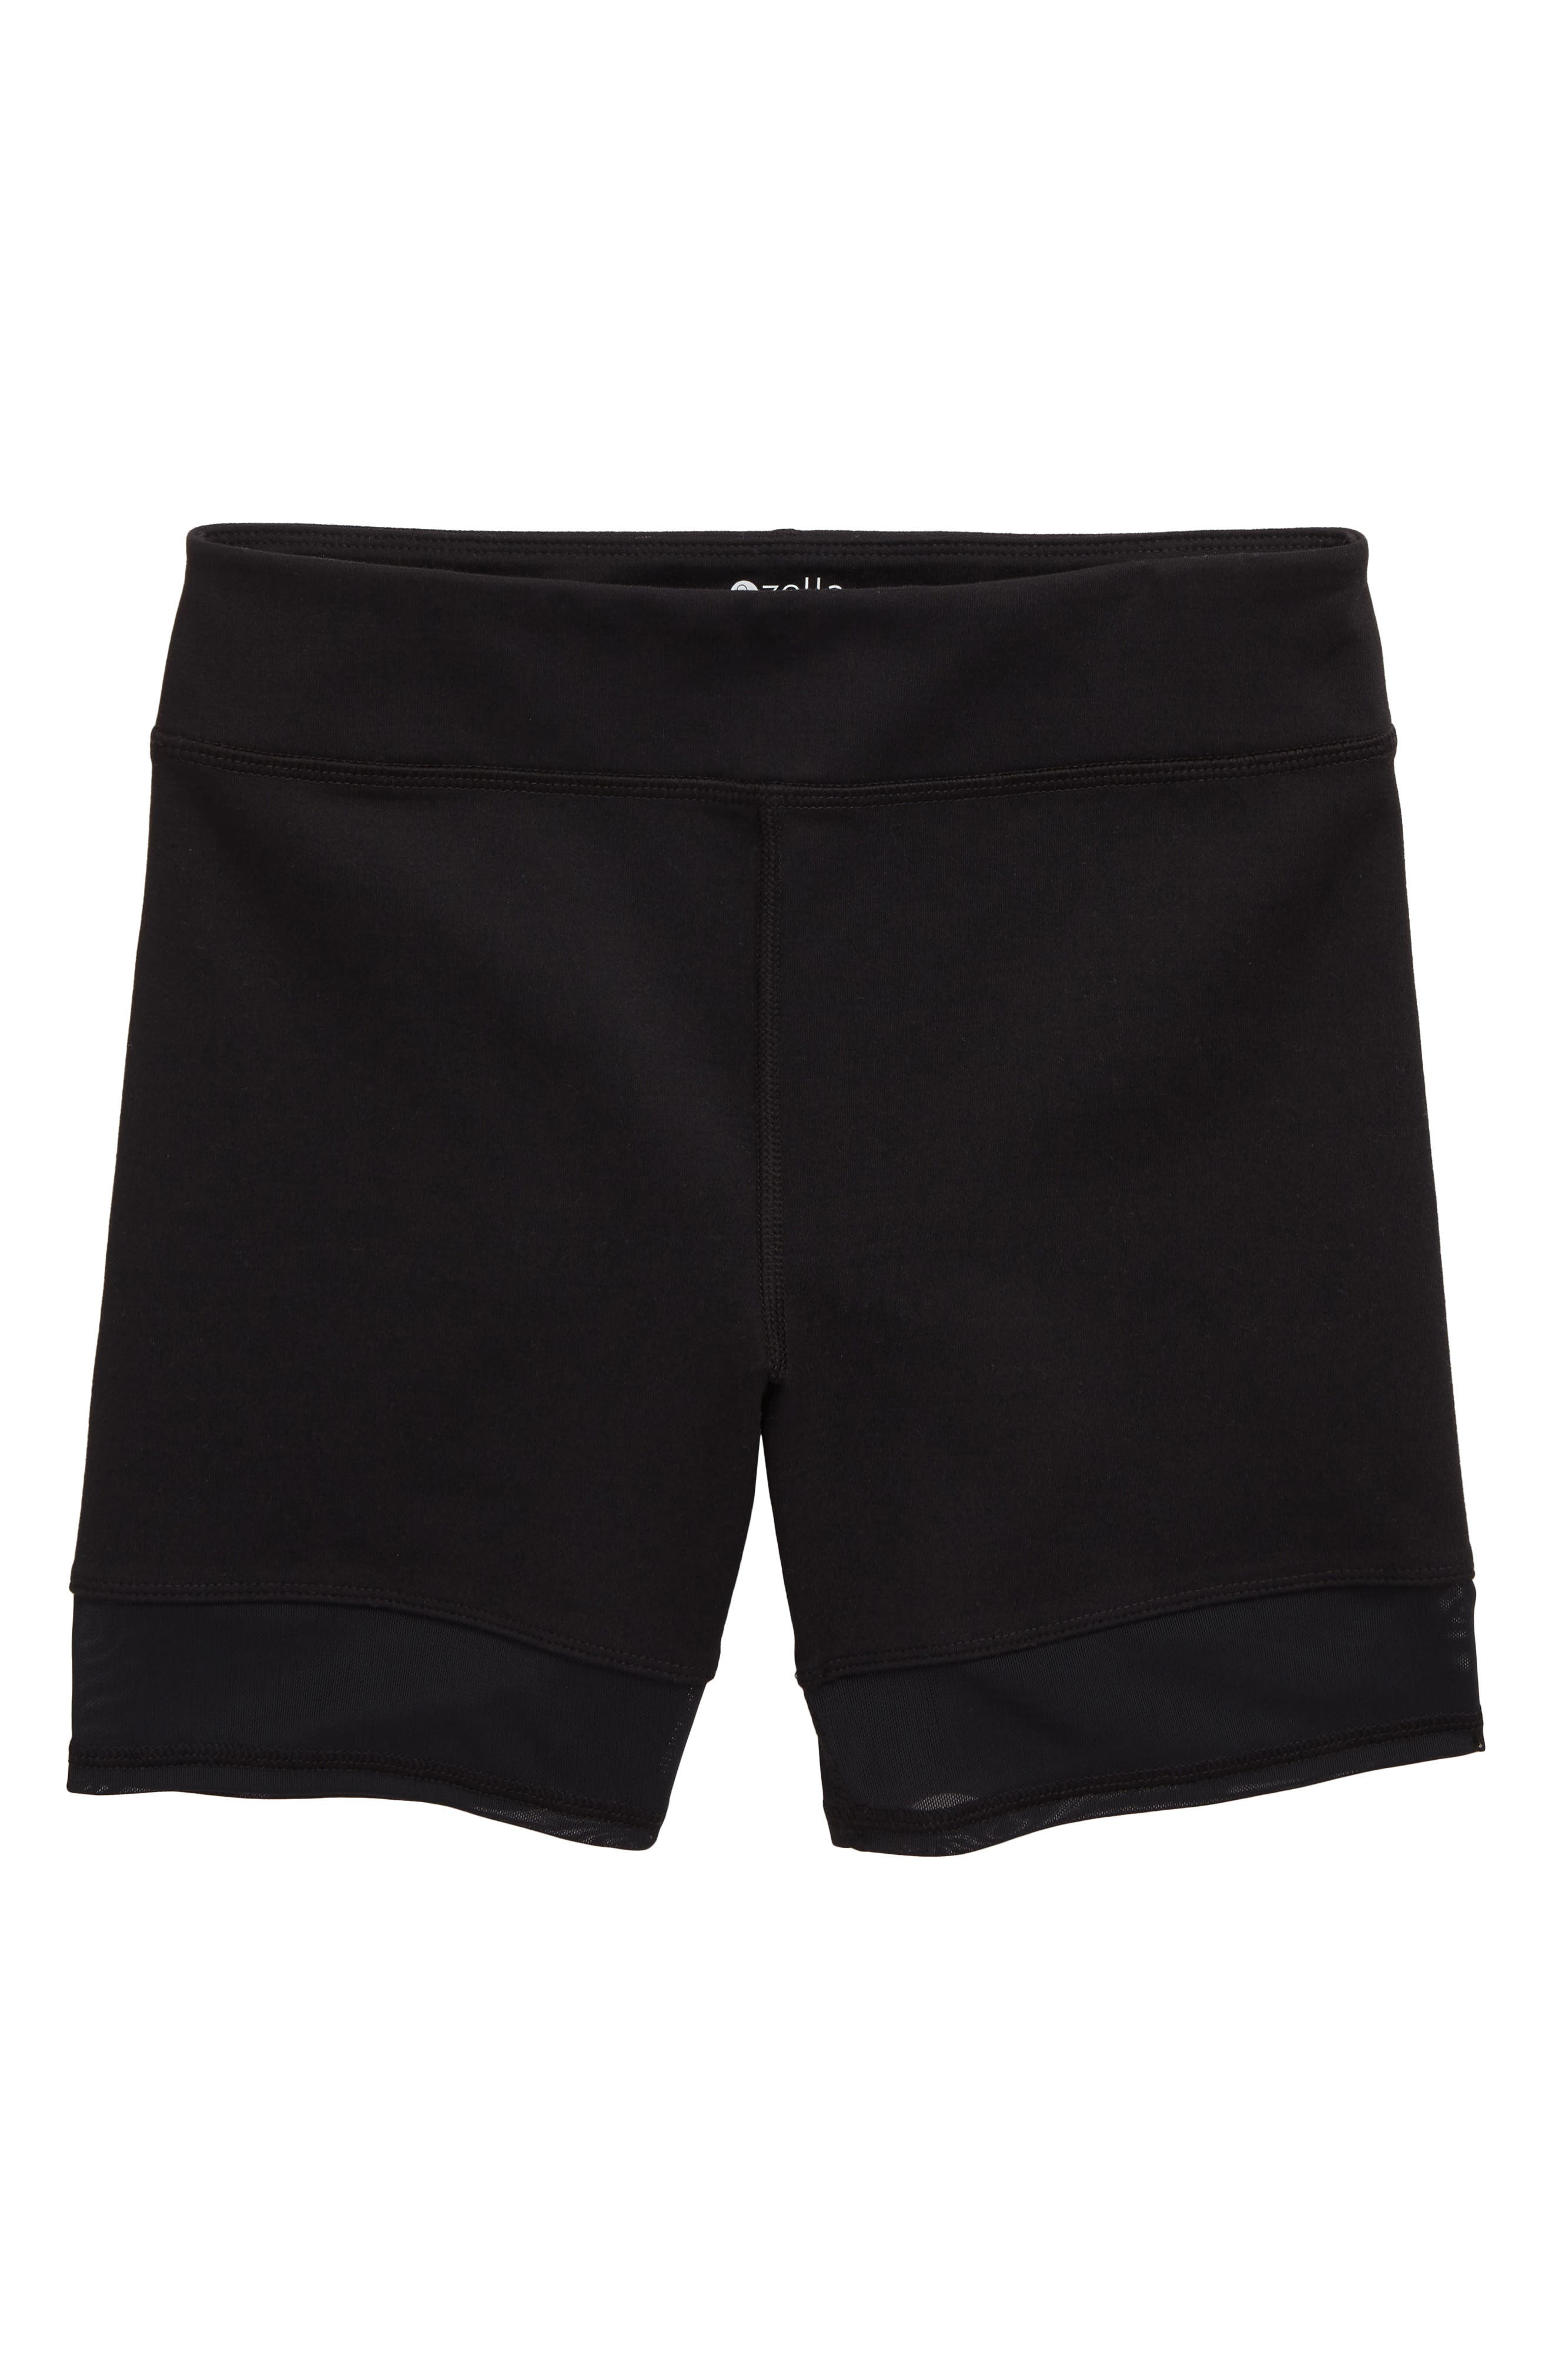 Girls Zella Girl Mesh Trim Bike Shorts